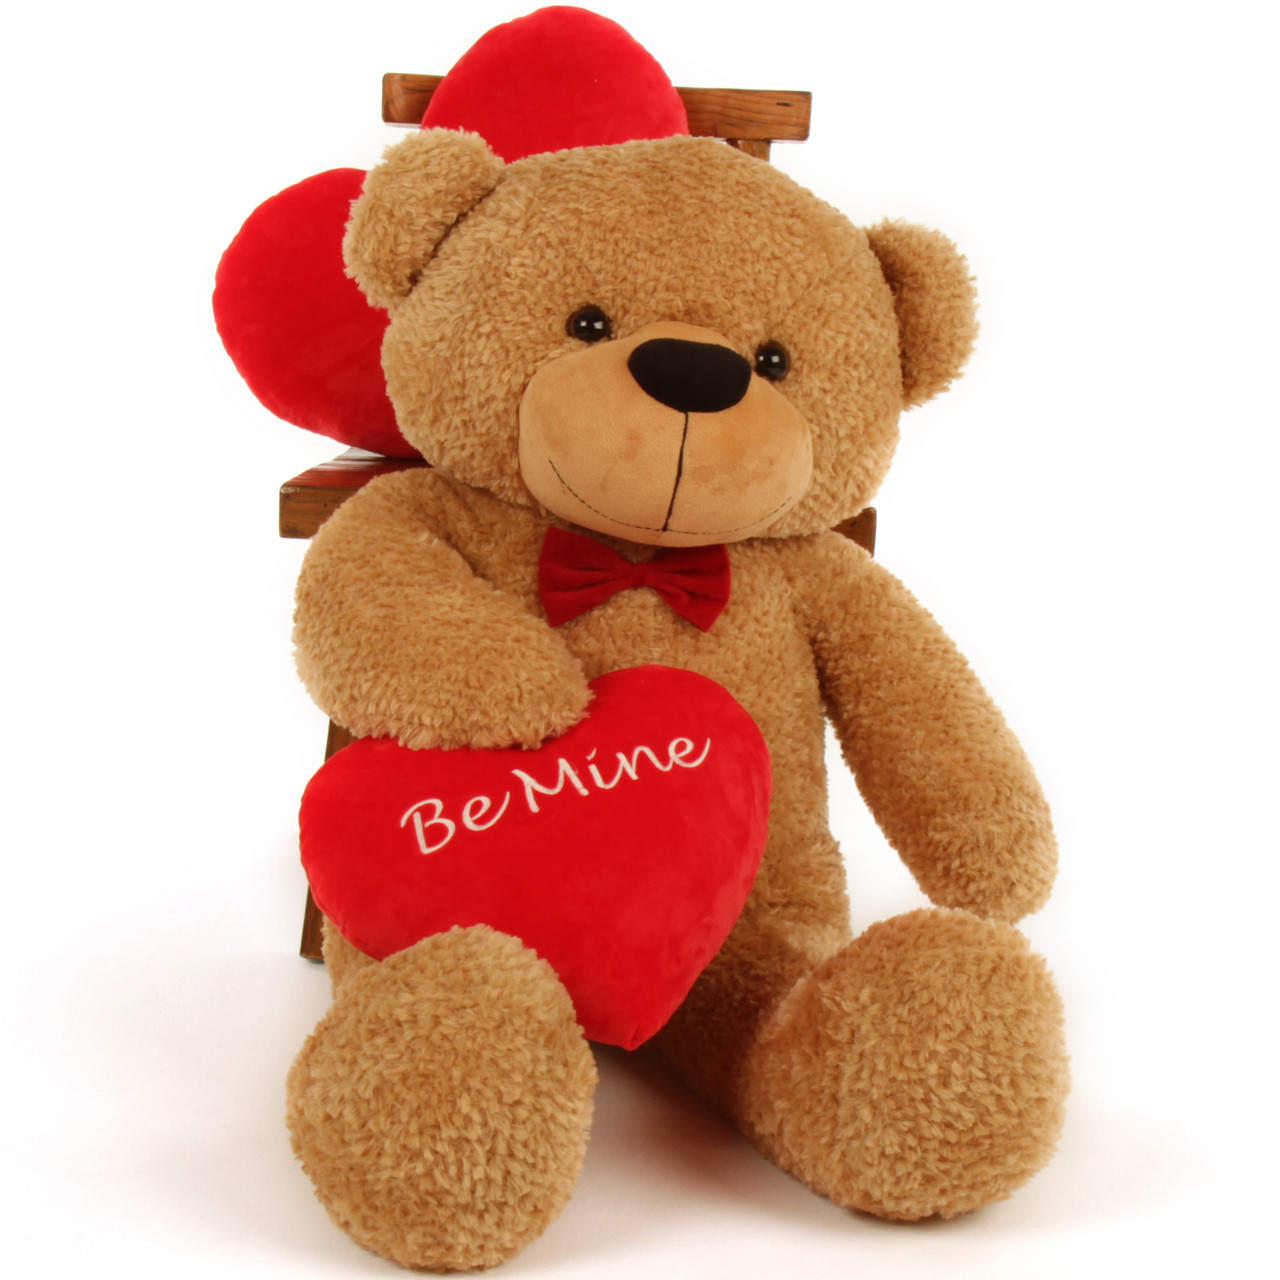 giant teddy 38in valentine's day be mine red heart amber fur, Ideas